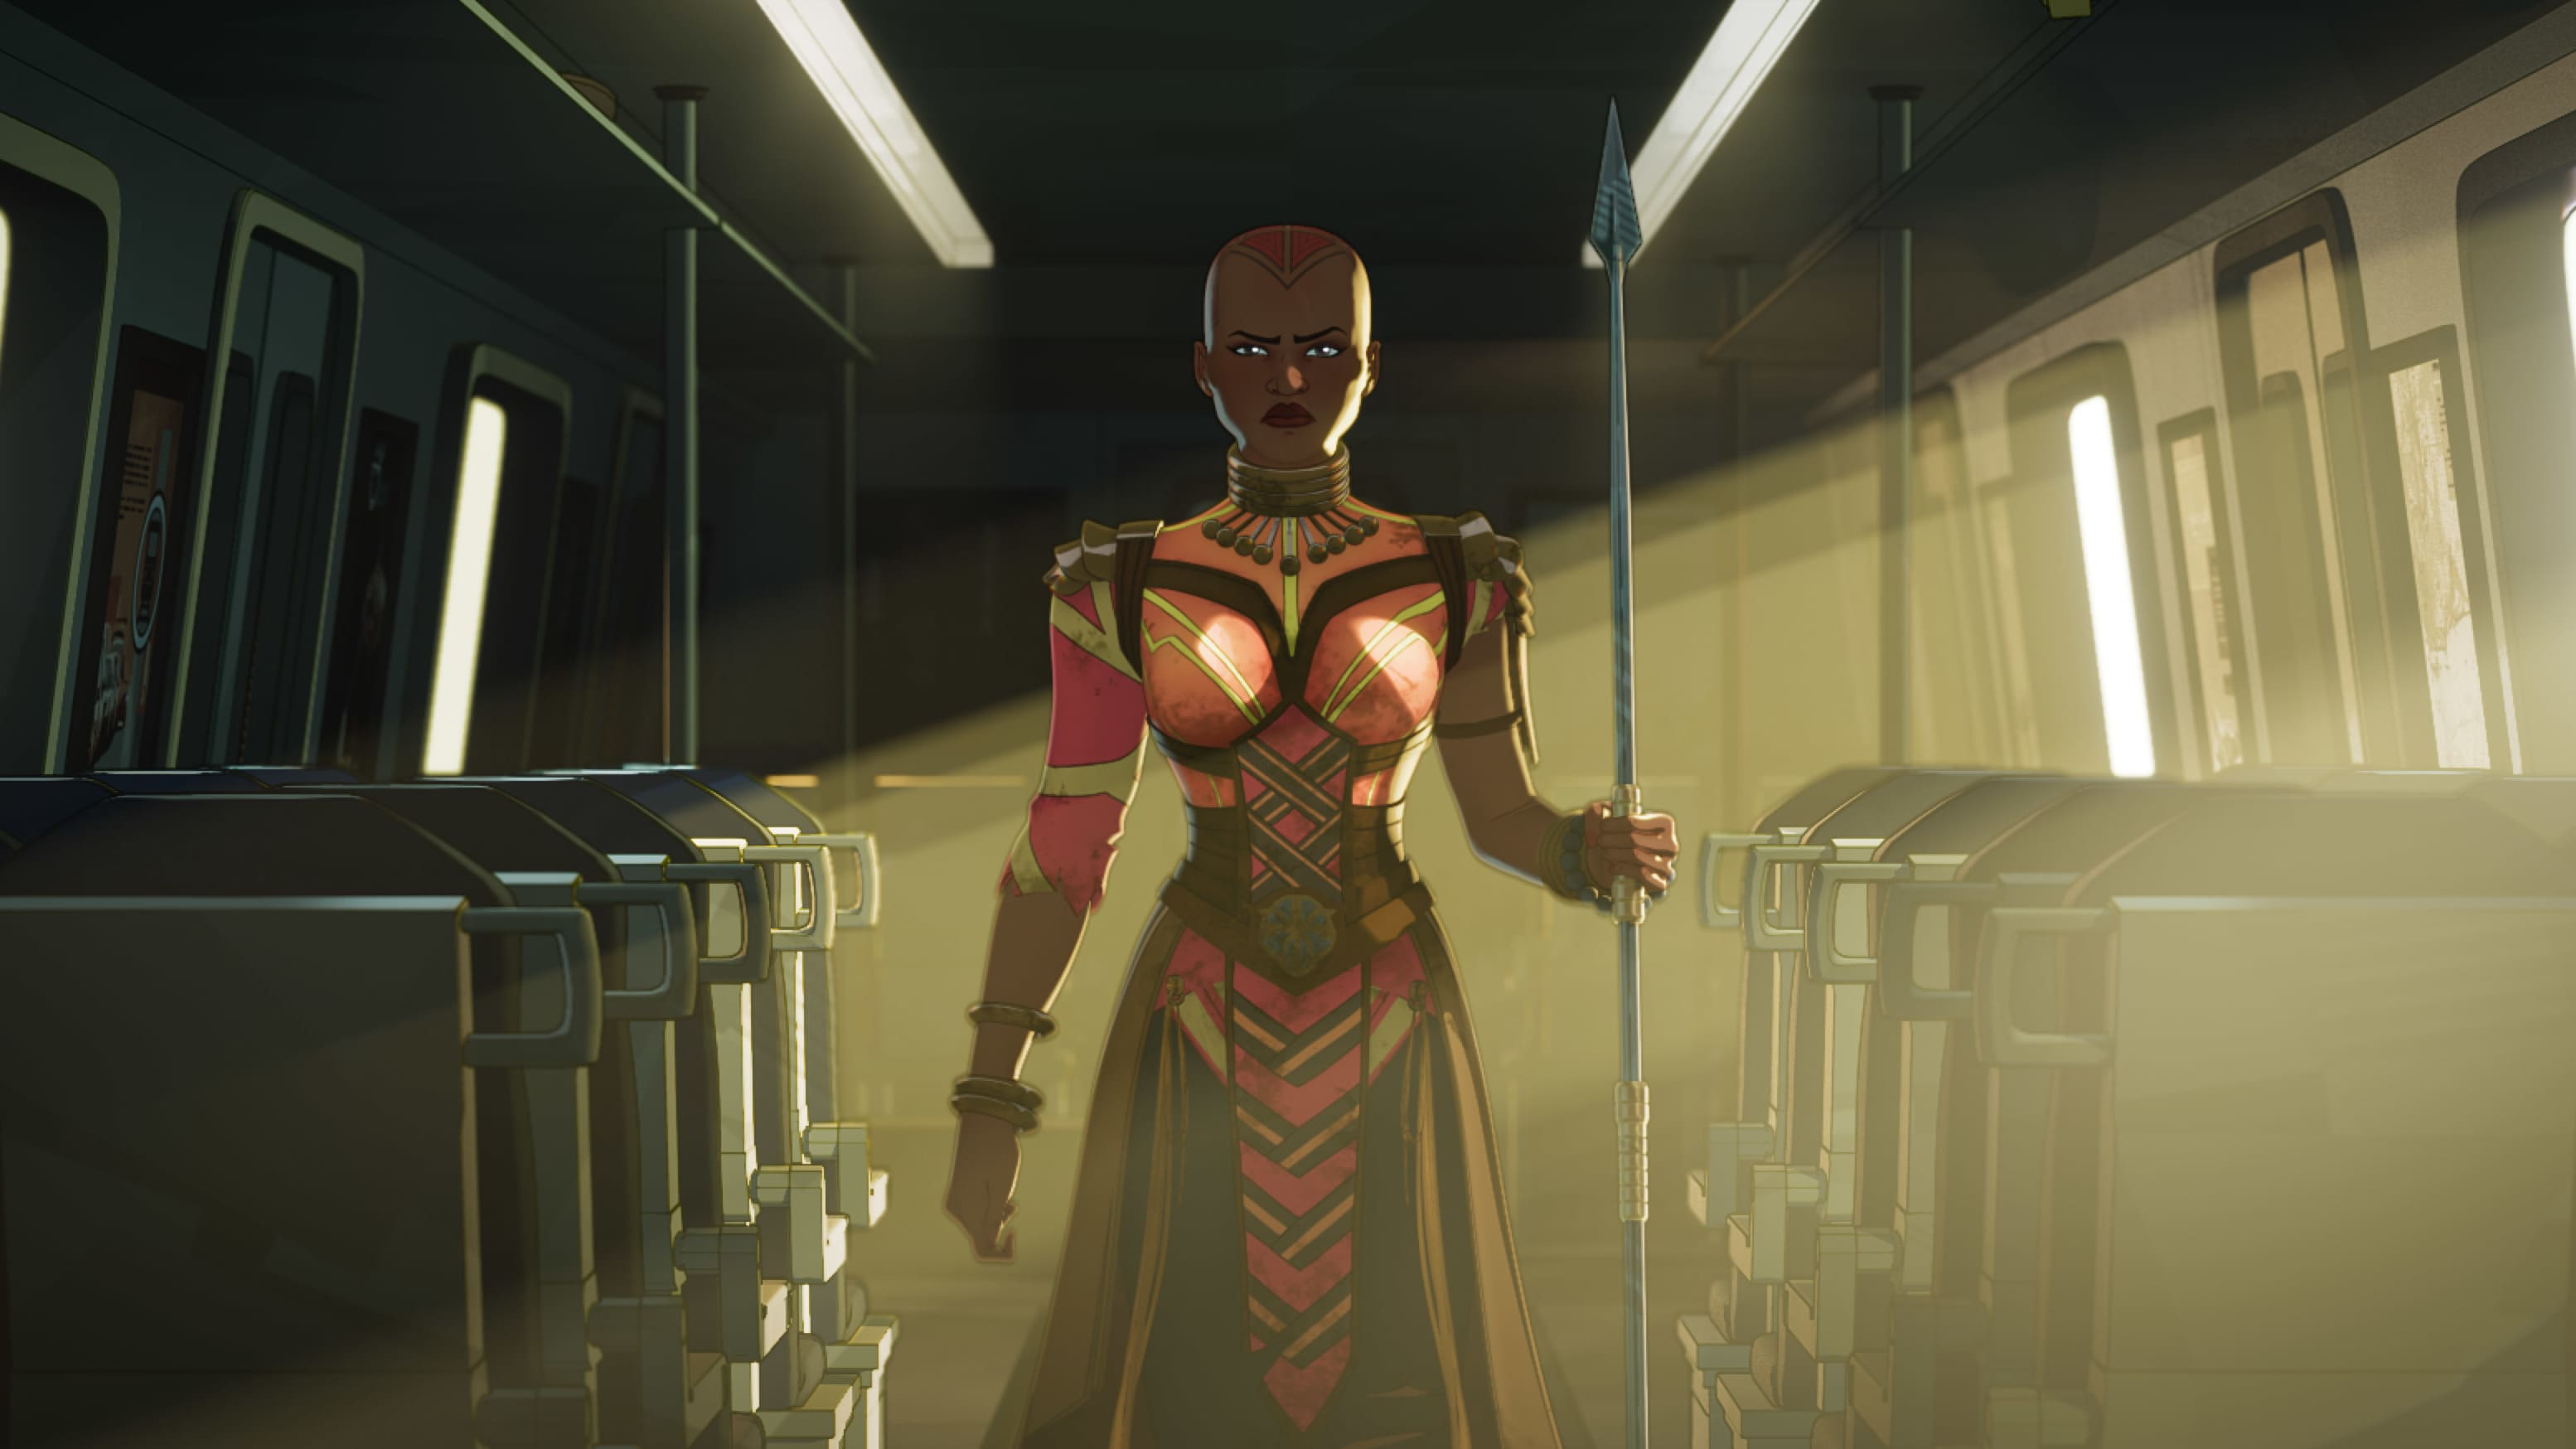 Okoye in Marvel Studios' WHAT IF…? exclusively on Disney+. ©Marvel Studios 2021. All Rights Reserved.